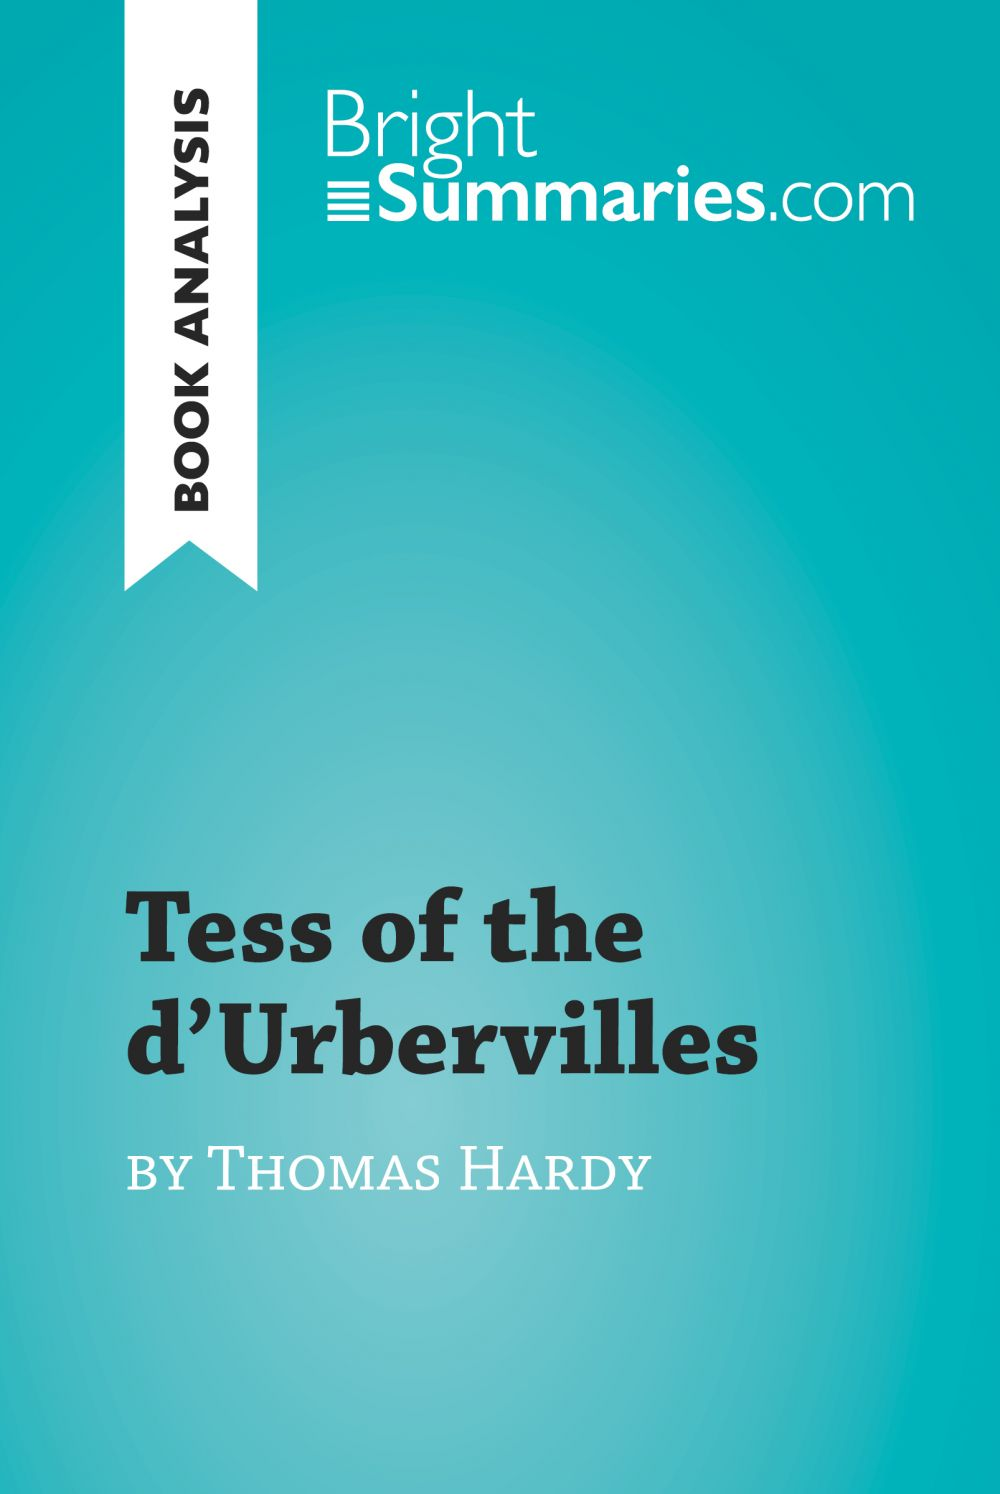 Tess of the d'Urbervilles by Thomas Hardy (Book Analysis)